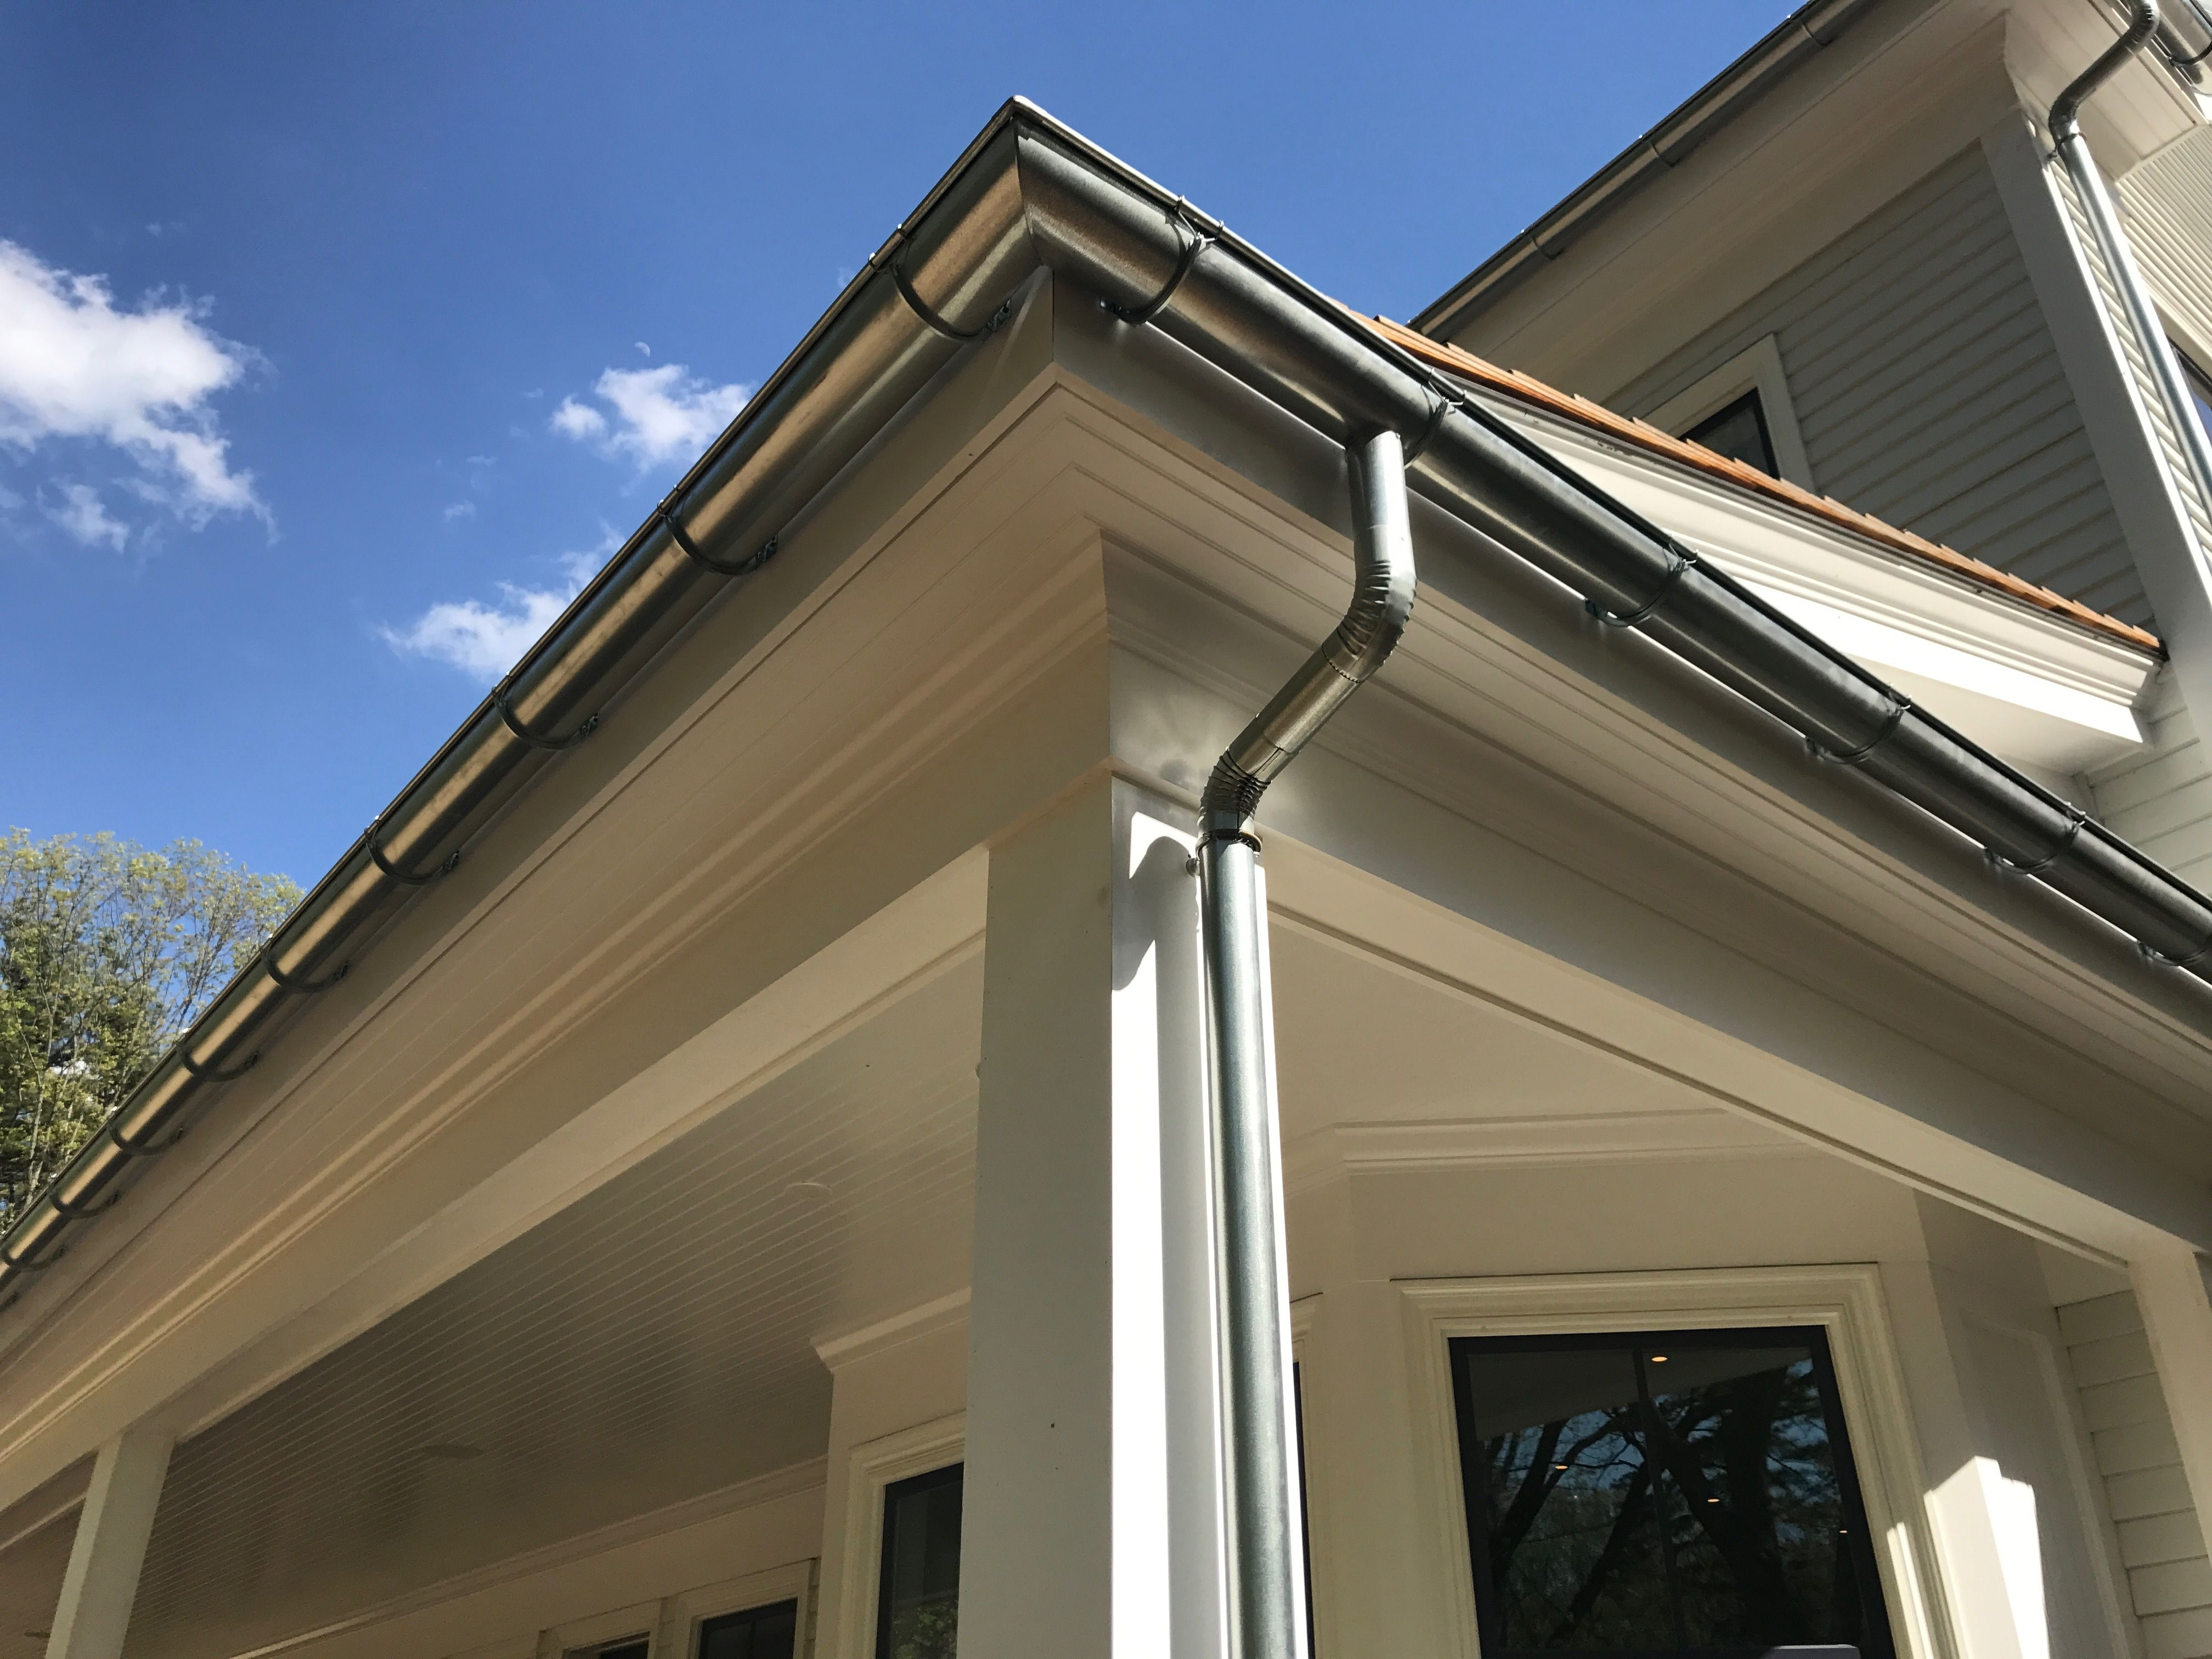 Half Round Gutters Offer A Alternative Style For Your Home These Have Beautiful Look Available In Aluminum Copper And Galvanized